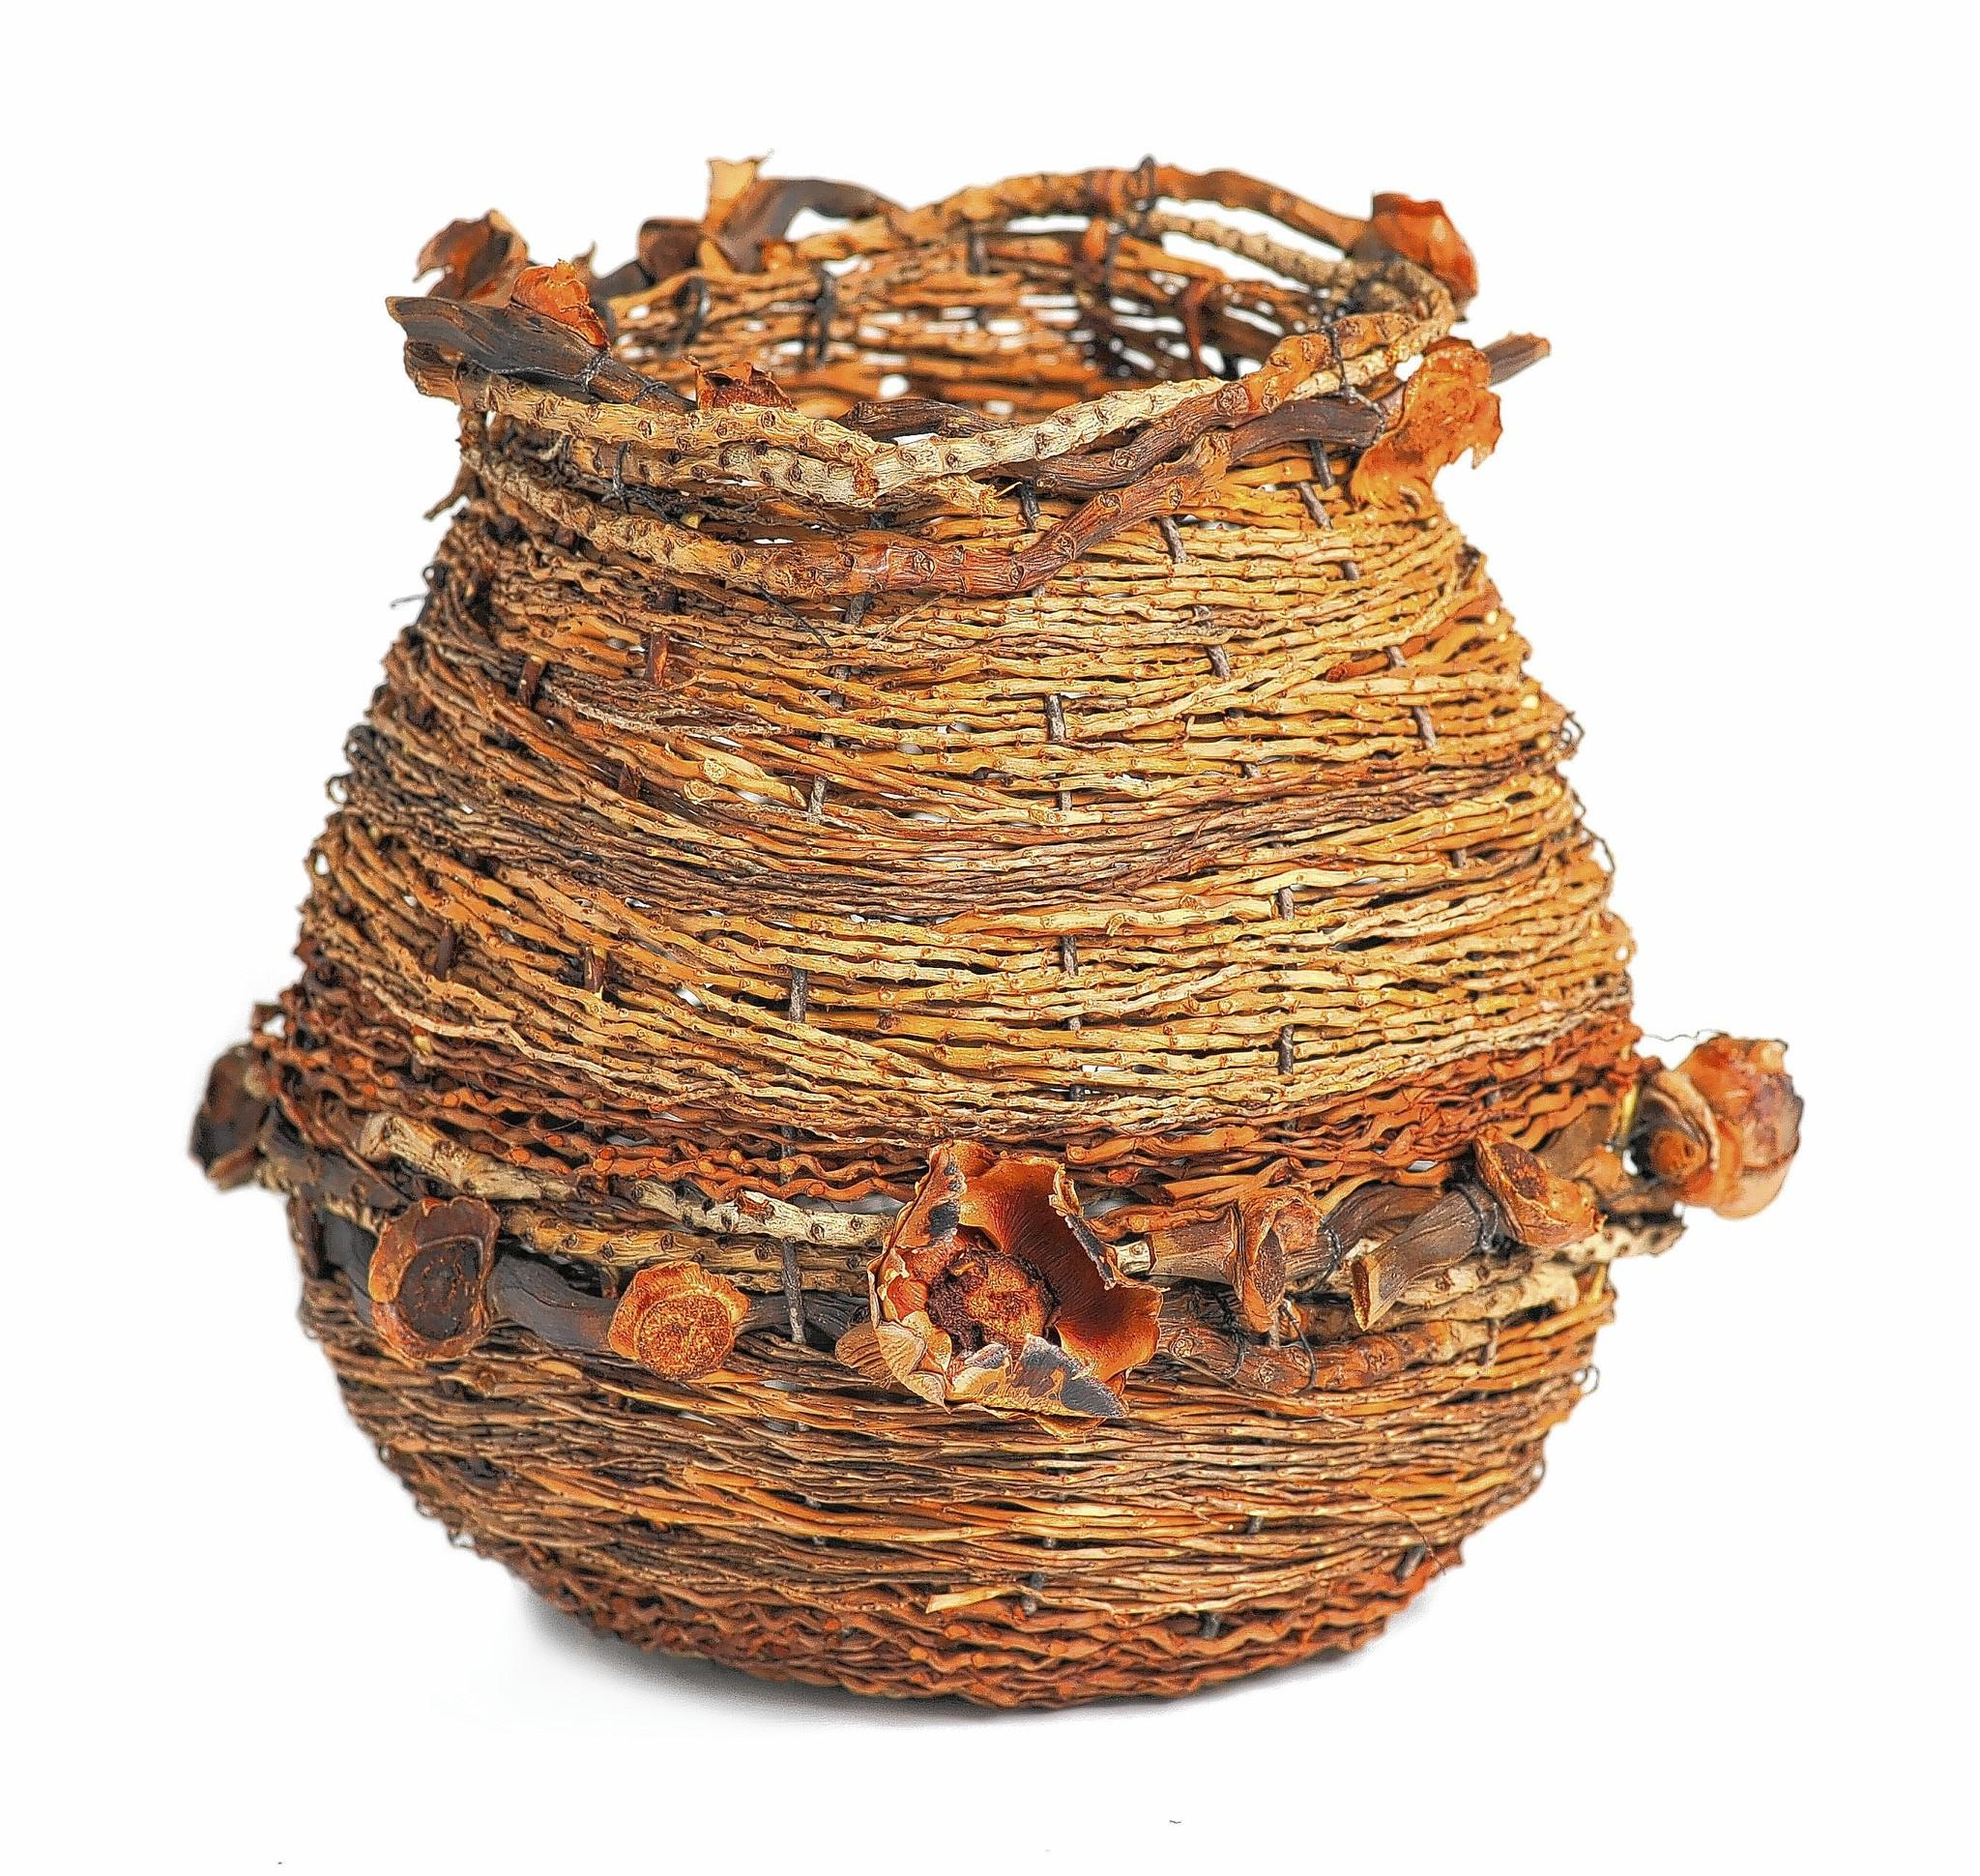 A decorative basket from EarthArt by Mary and Teri, using all-natural material plucked from South Florida's backyard.